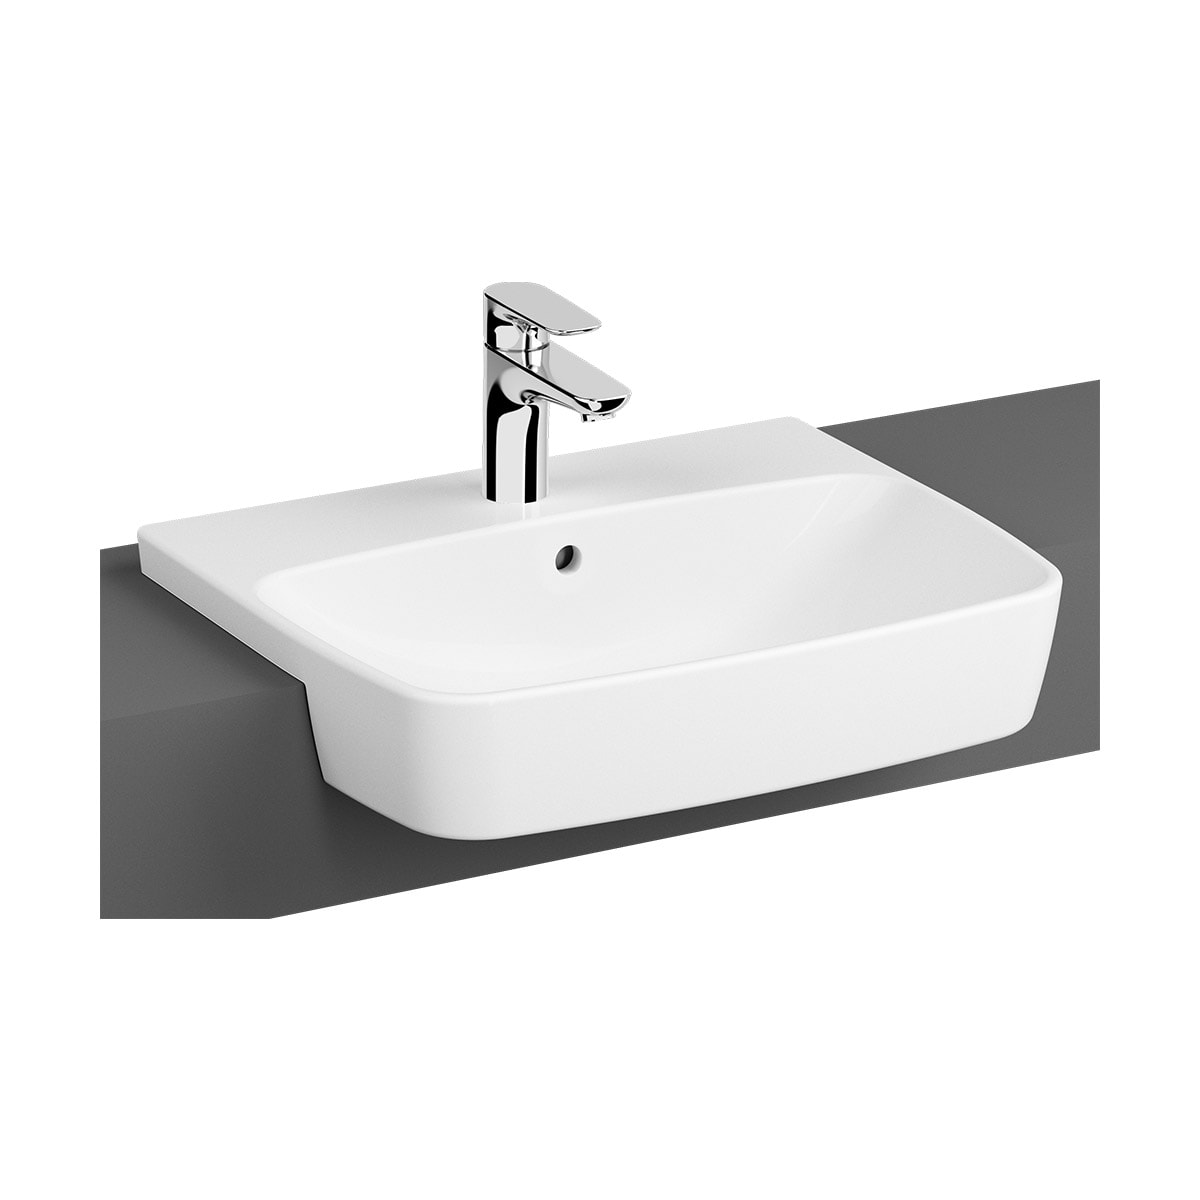 Shift Semi-Recessed Basin, 55cm, One Tap Hole, With Overflow Hole